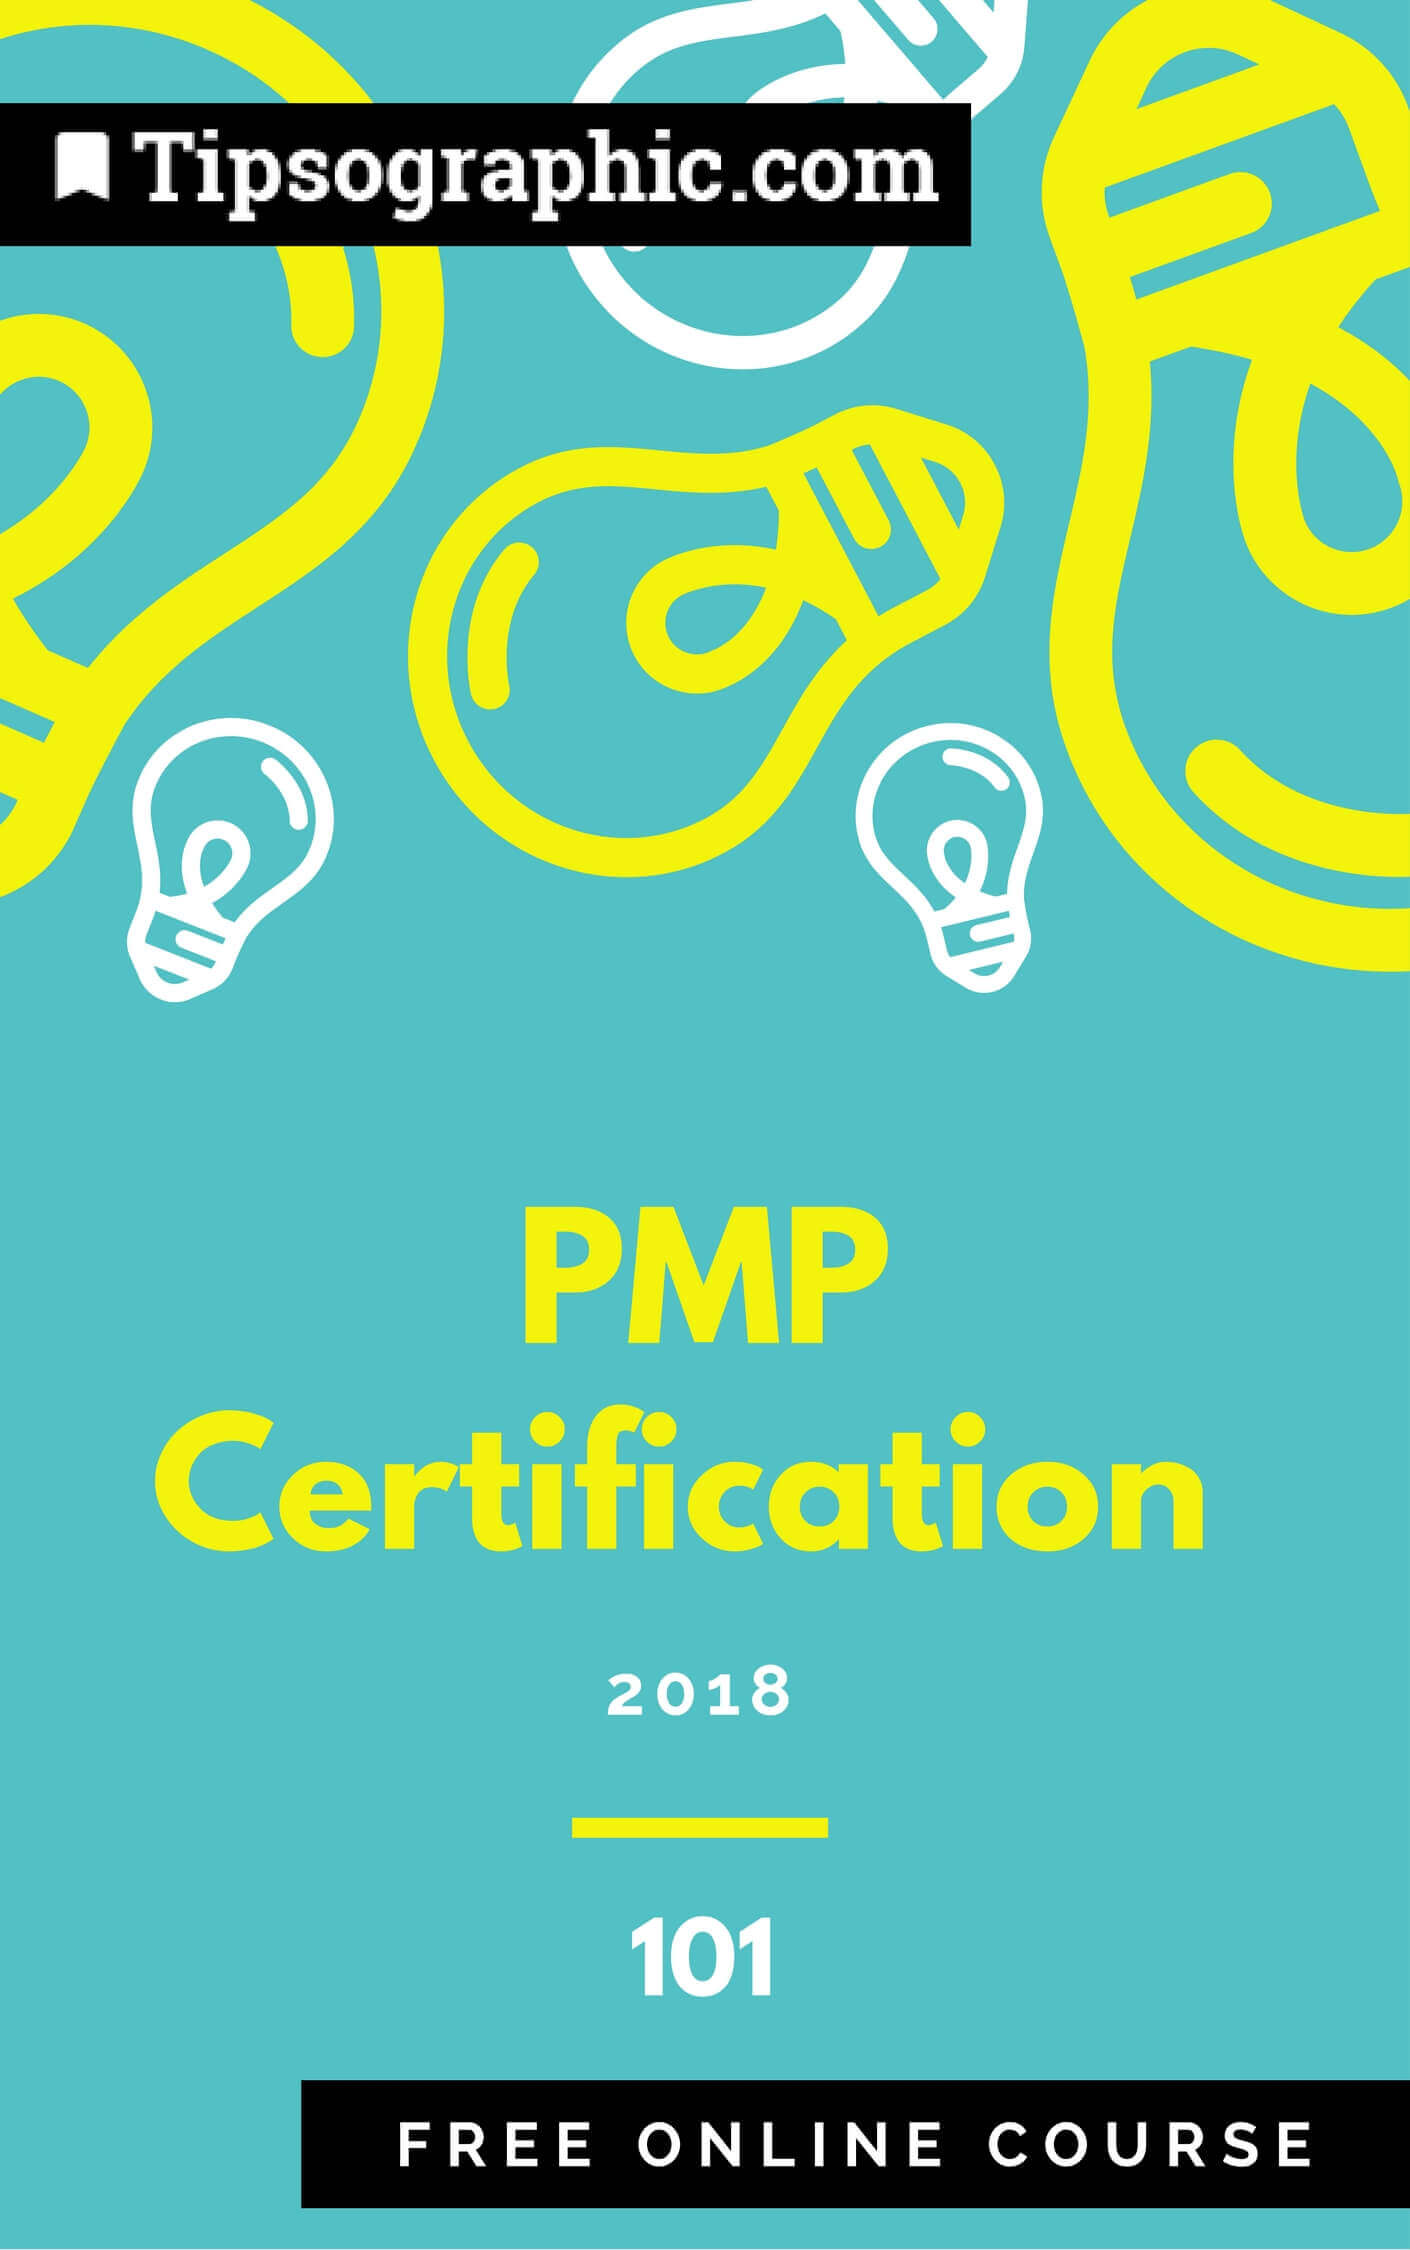 pmp certification 2018 free online course tipsographic